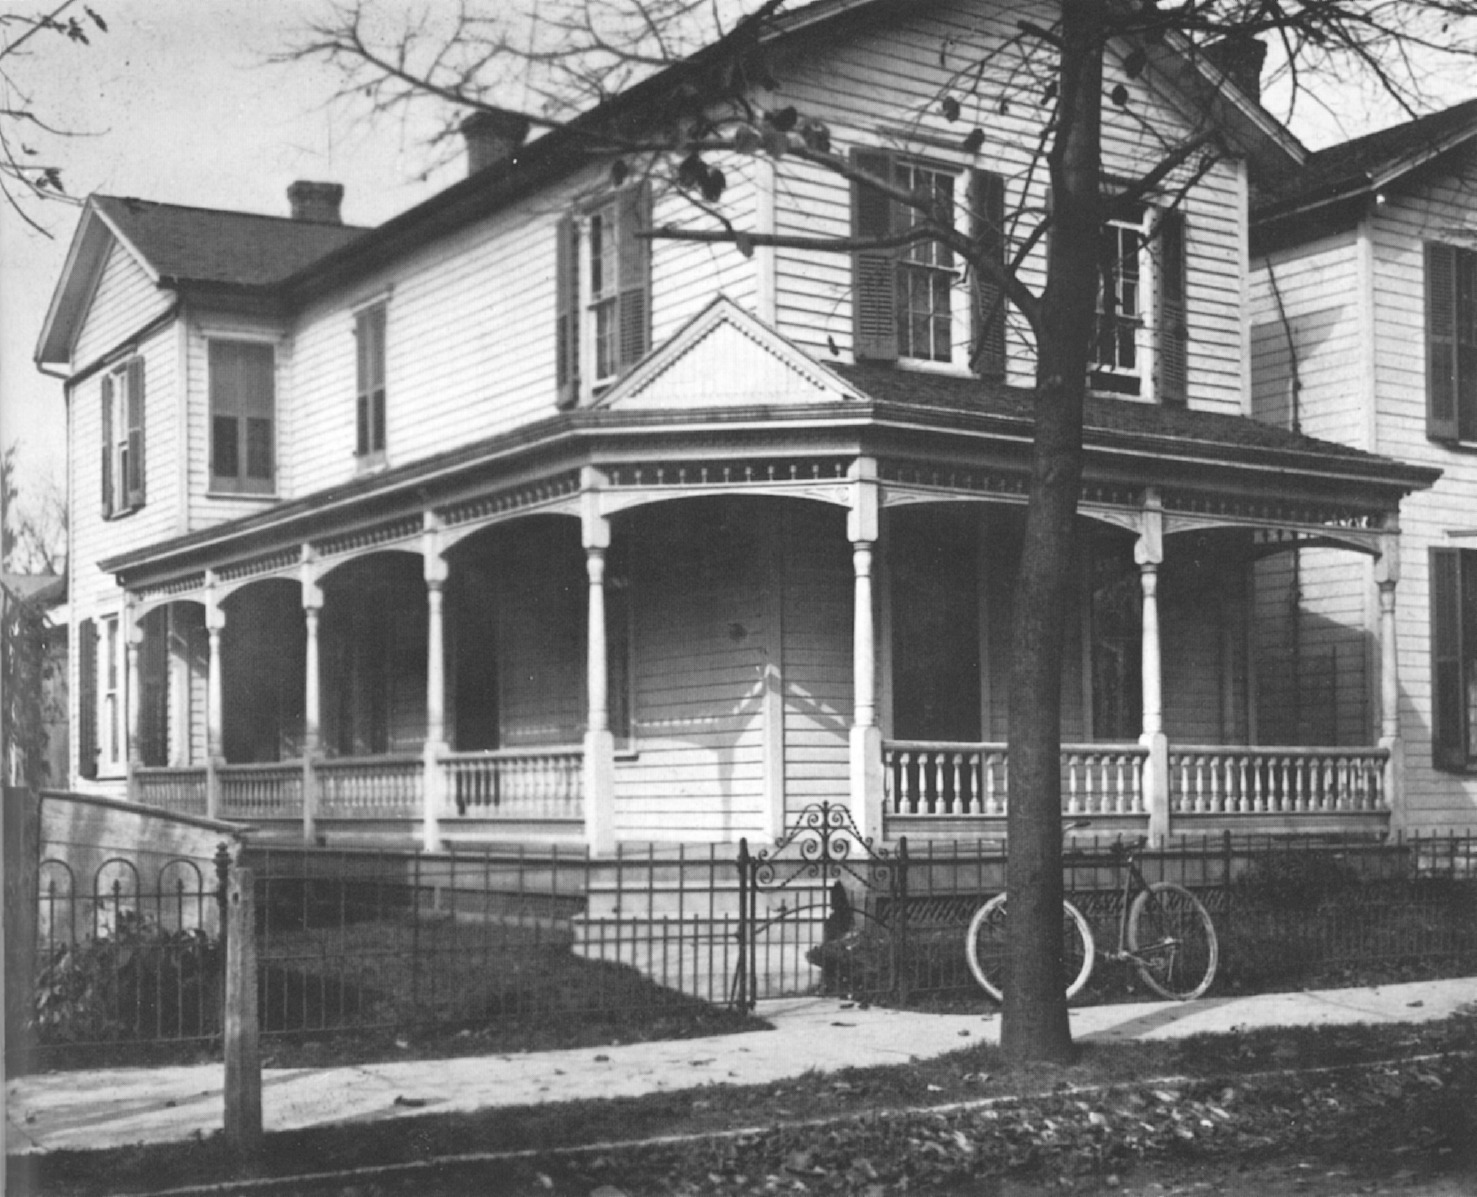 1898    The Wright home at 7 Hawthorne Street in Dayton  Ohio  Both the home  and the bicycle shop were later moved to Greenfield Village at the Henry  Ford. Wright Photos